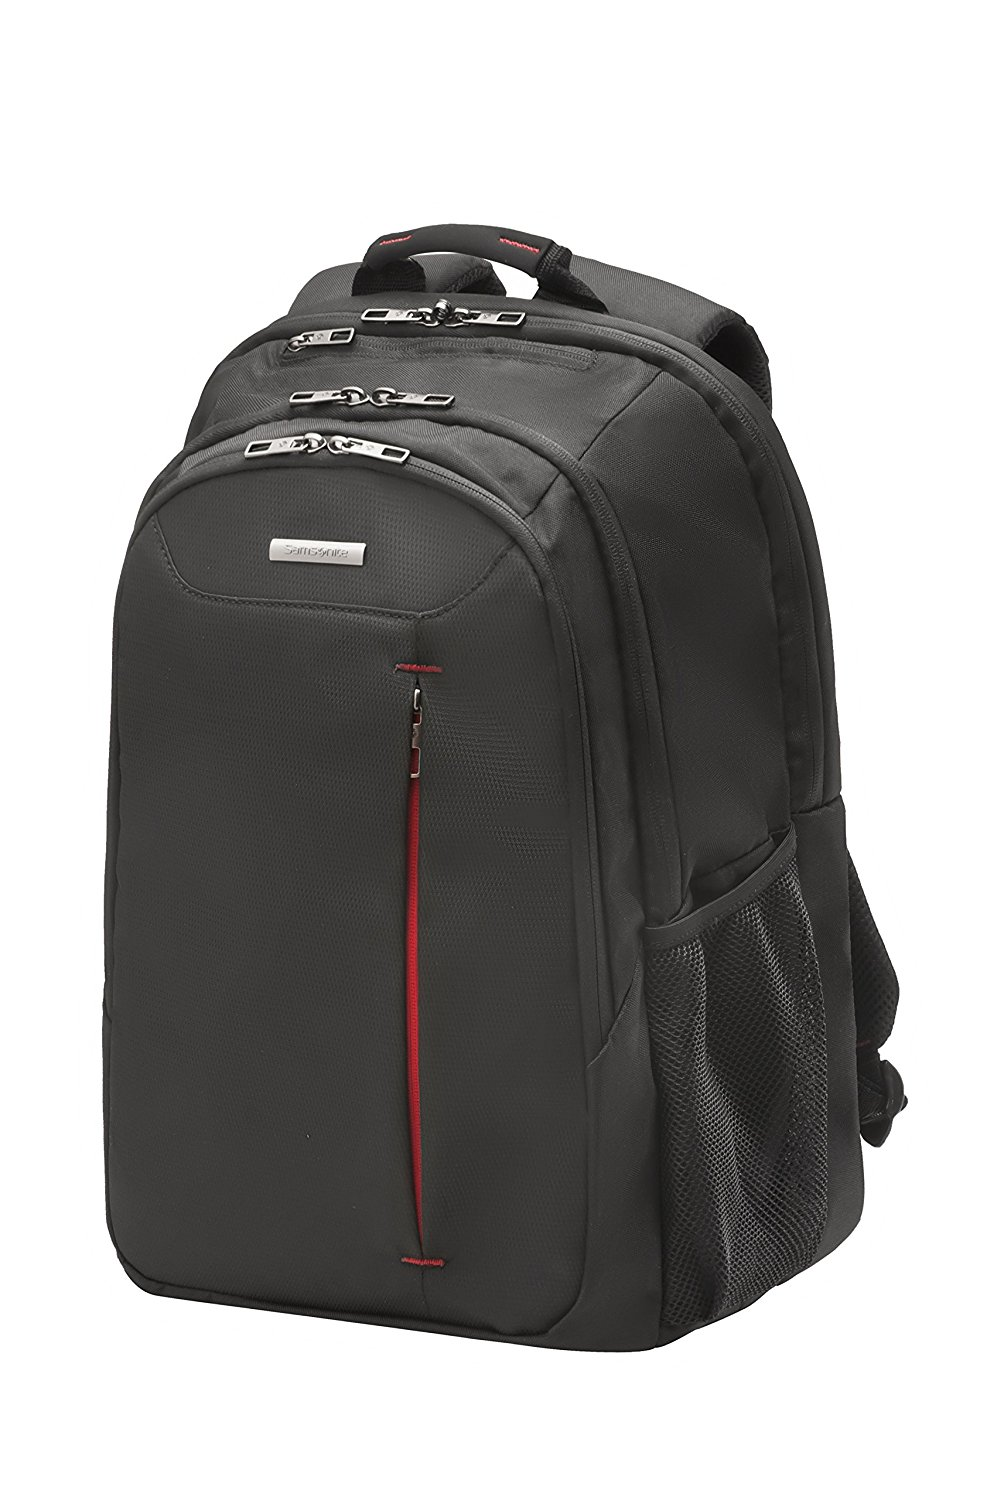 Samsonite Laptop Rucksack amazon